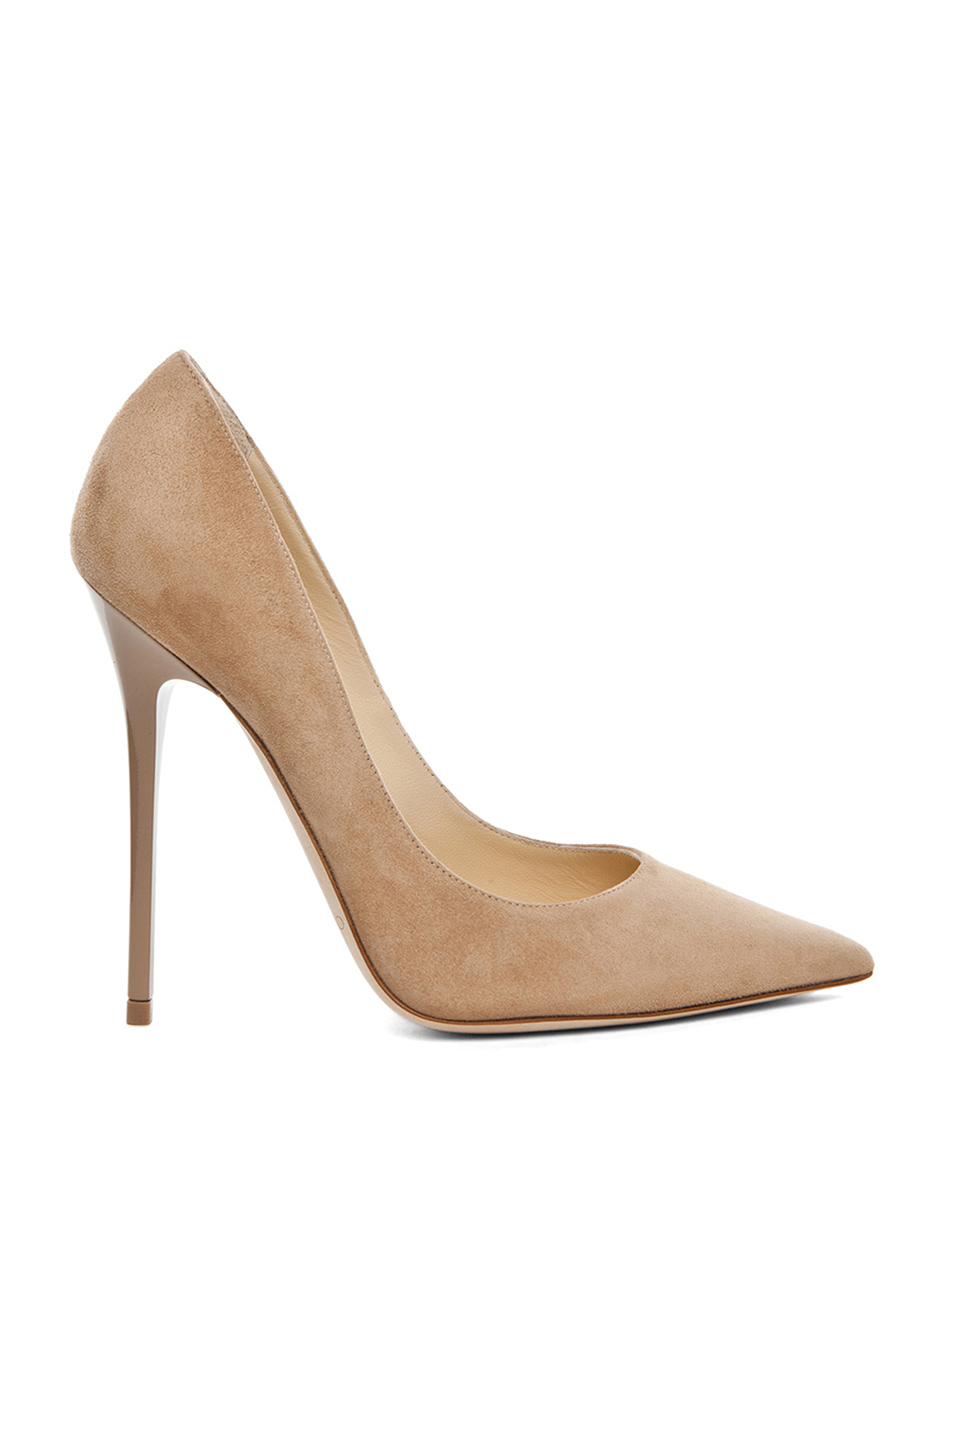 Jimmy Choo Anouk 120 Suede Pumps In Neutral